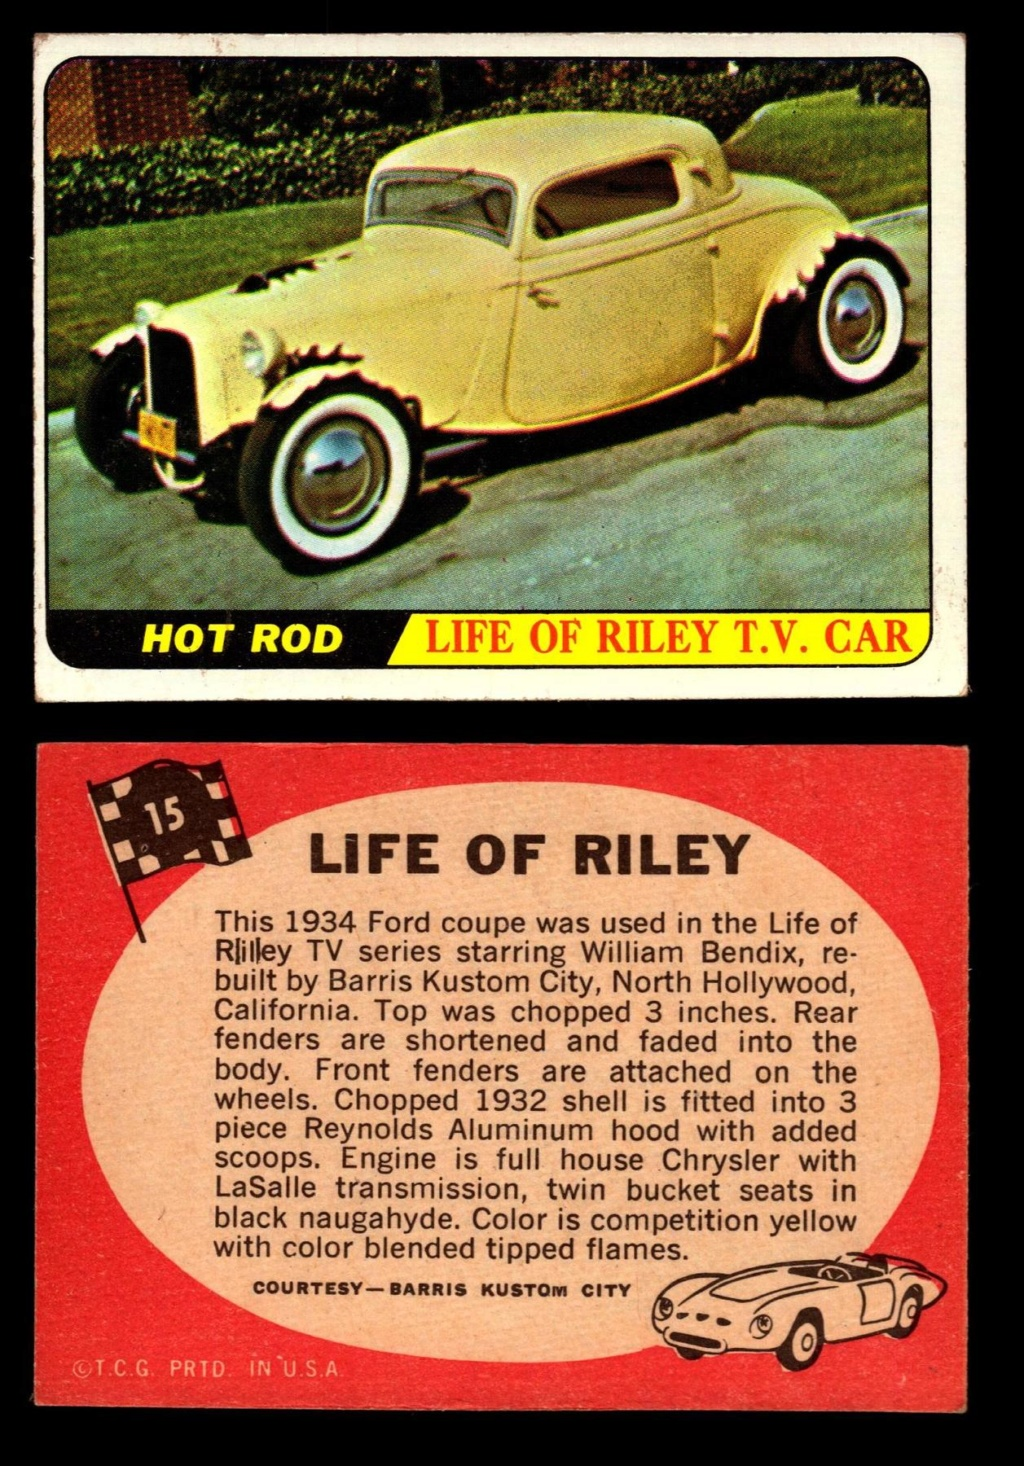 Hot Rods Topps - Vintage Trading Cards 1968 - Custom car - Dragster - Racer - Dream car - Barris Kustom City - Ed Roth Darrill Starbird, Gene Winfield, Bill Cuchenberry 15_77310